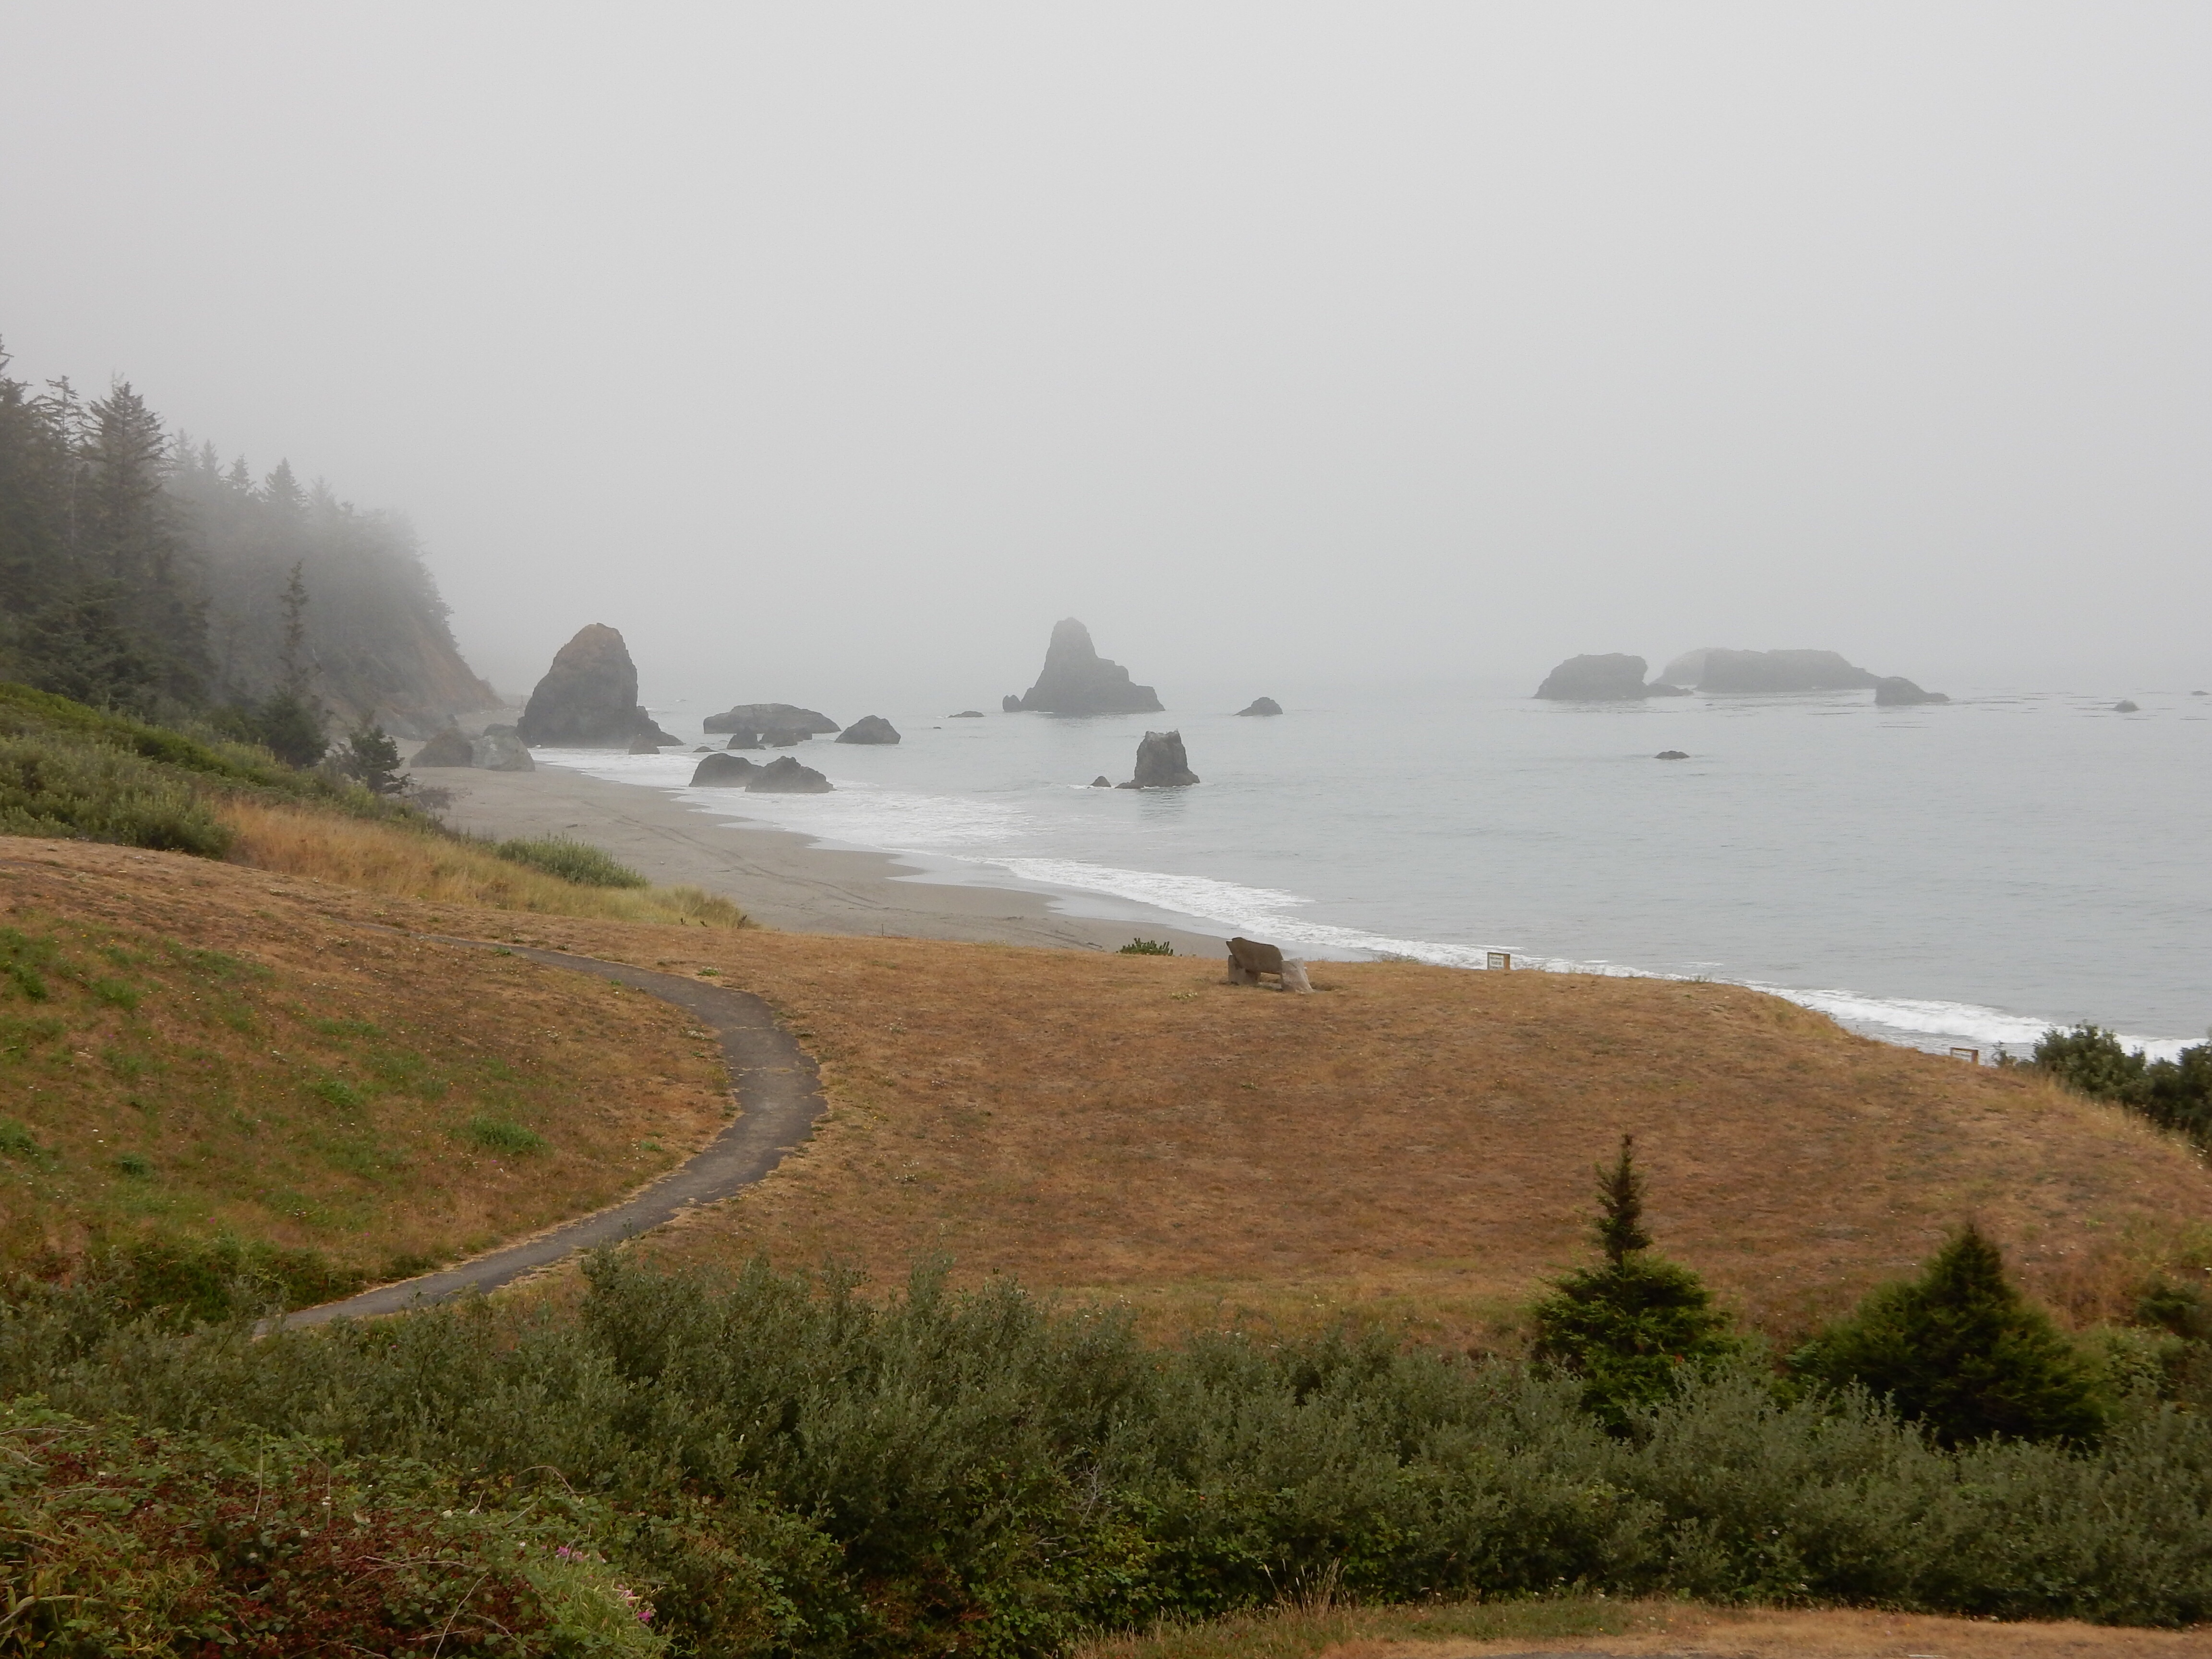 A view south from the Battle Rock overlook at Port Orford.